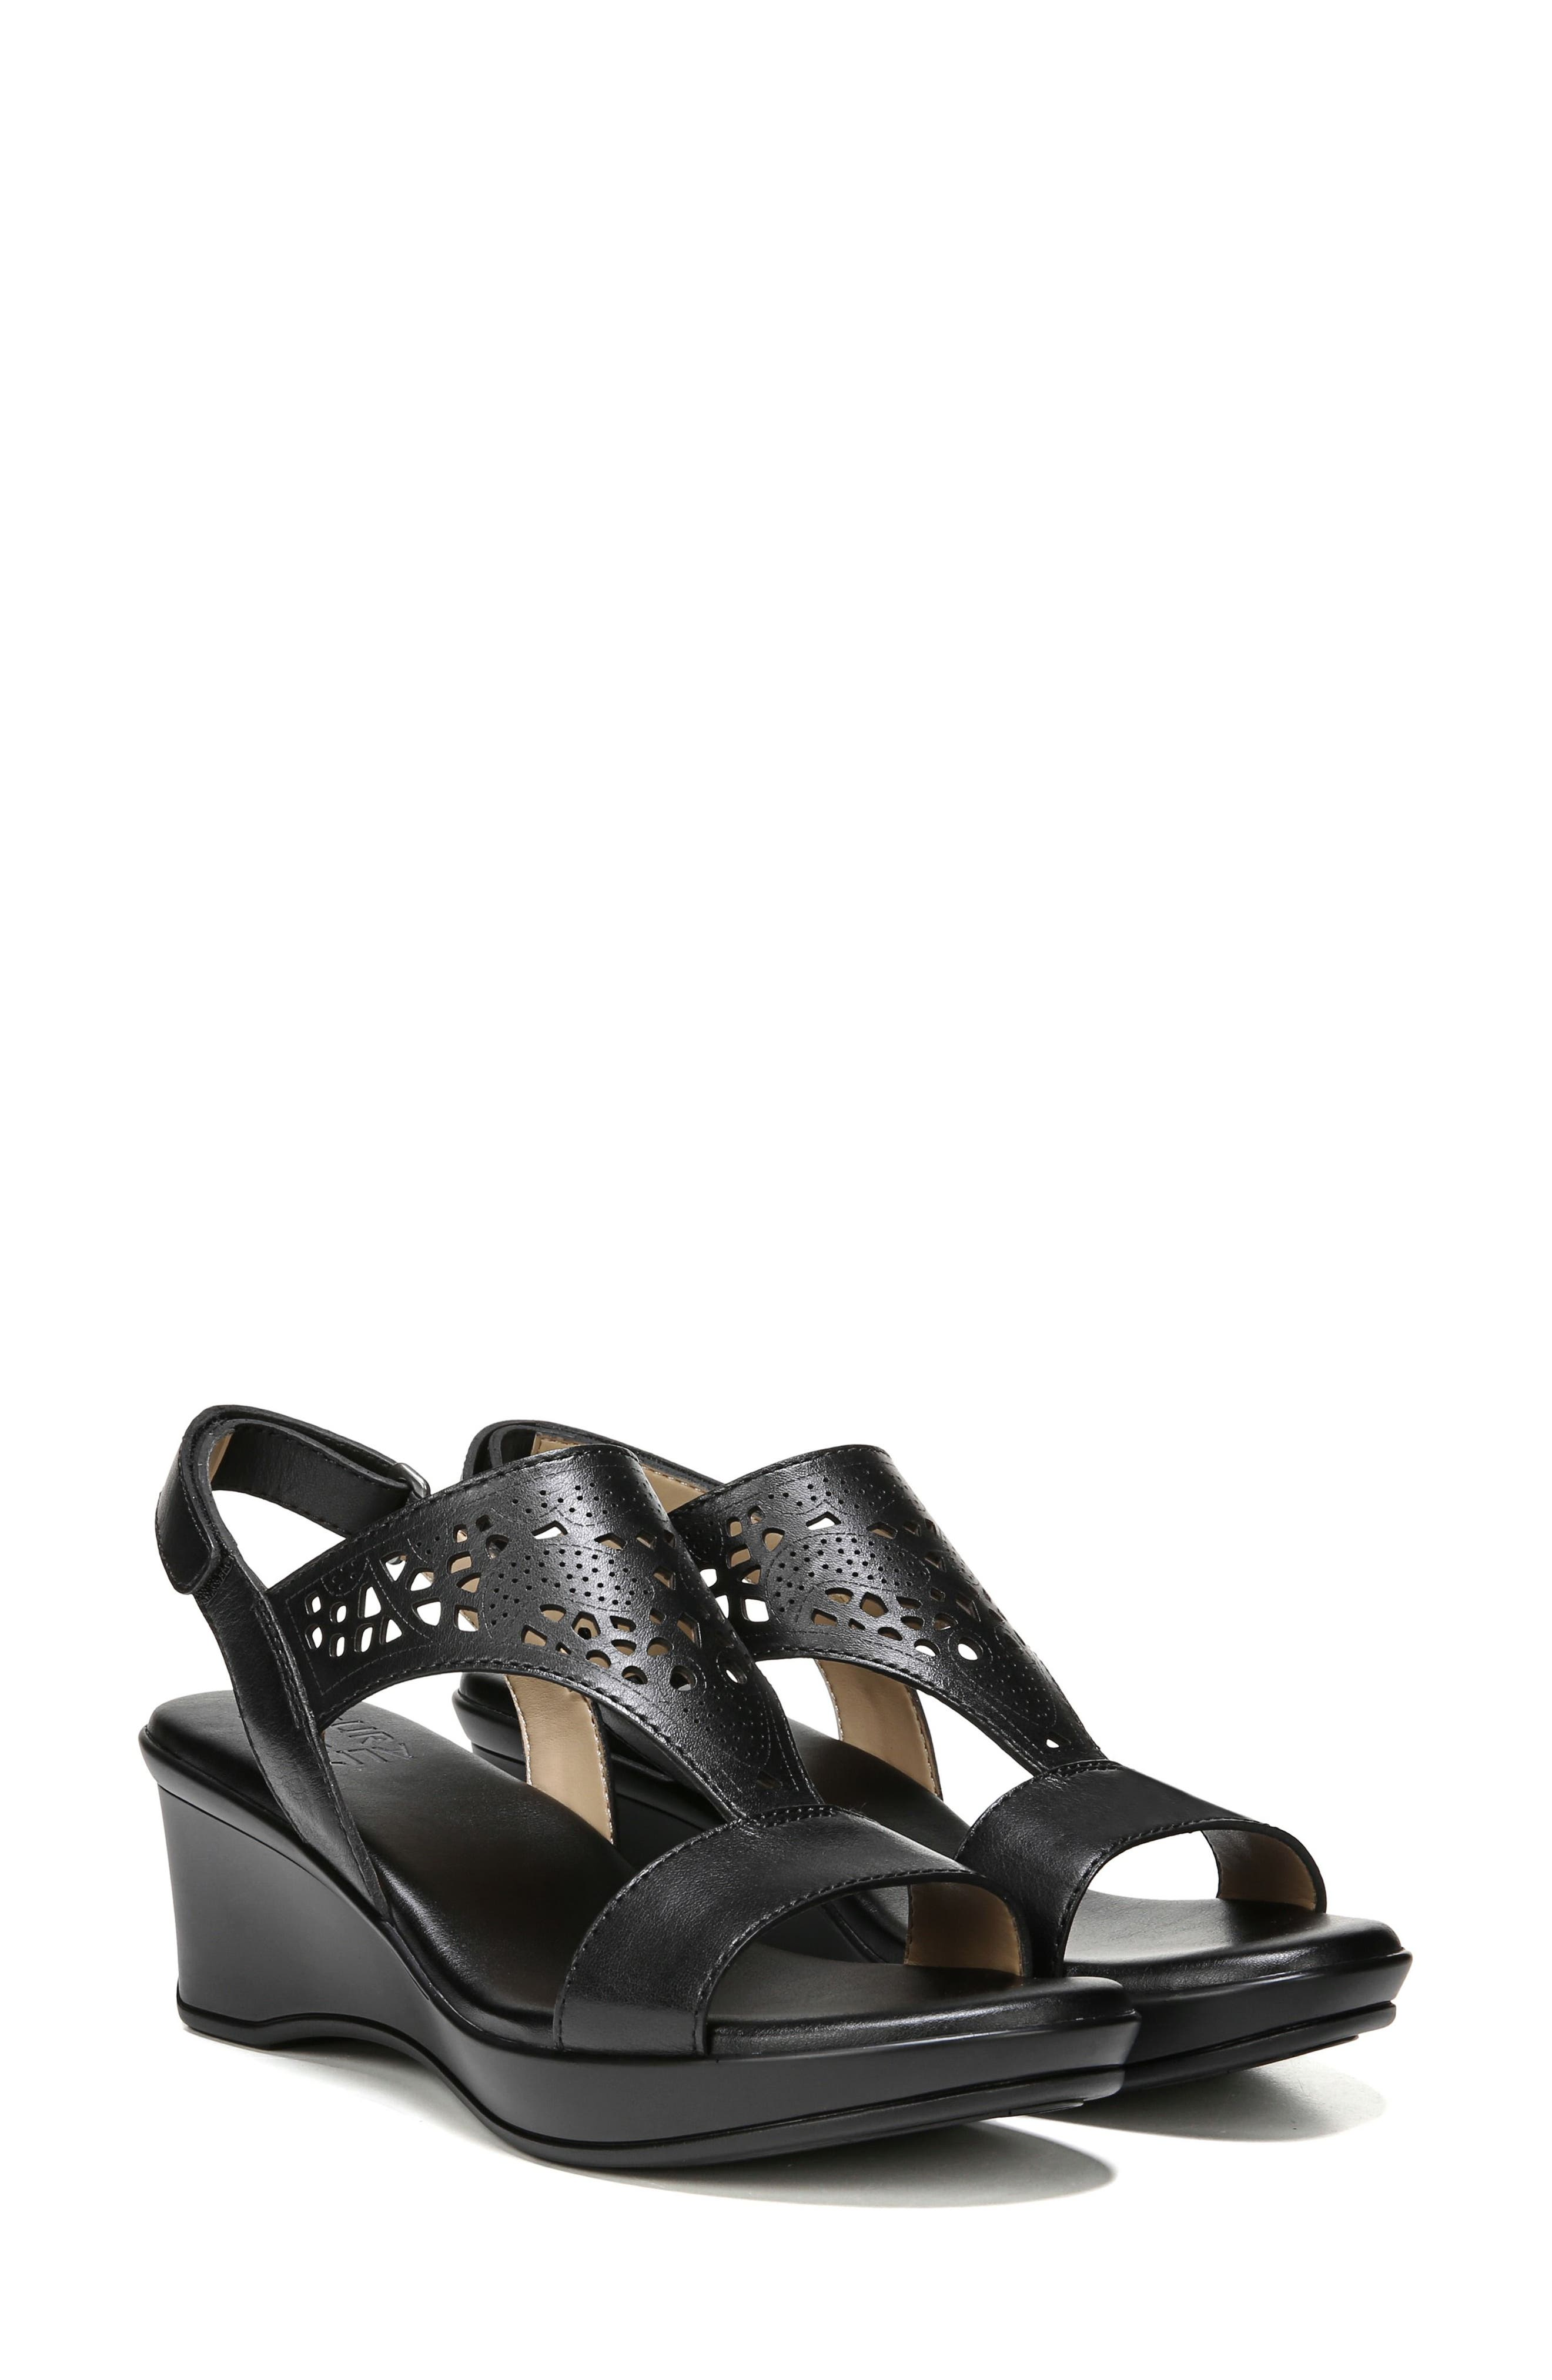 Veda Wedge Sandal,                             Alternate thumbnail 8, color,                             BLACK LEATHER